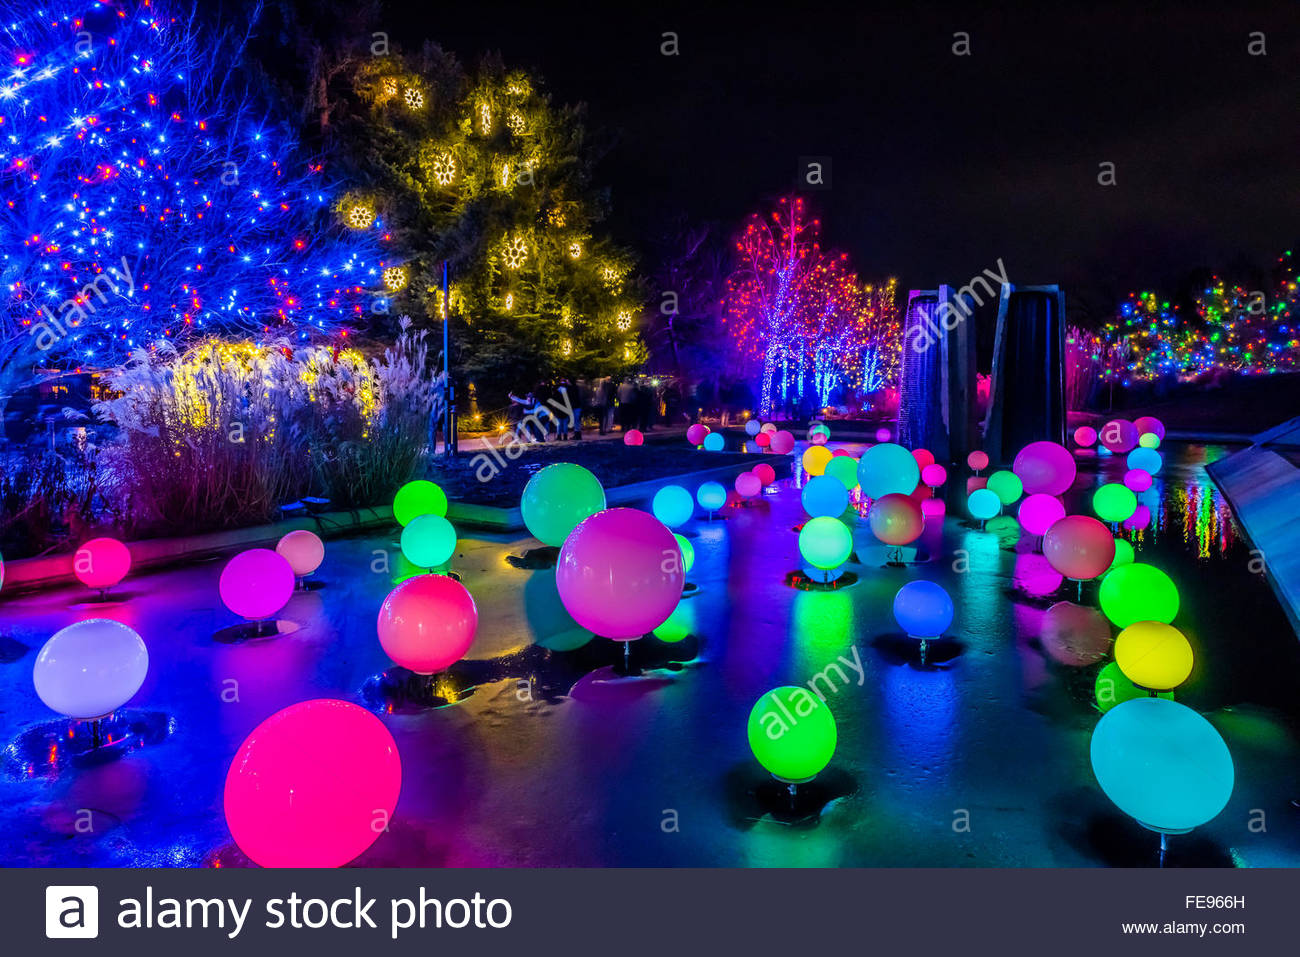 Charming Blossoms Of Light , One Million Lights Illuminating The Denver Botanic  Gardens During The Holiday Season, Denver, Colorado USA. Images